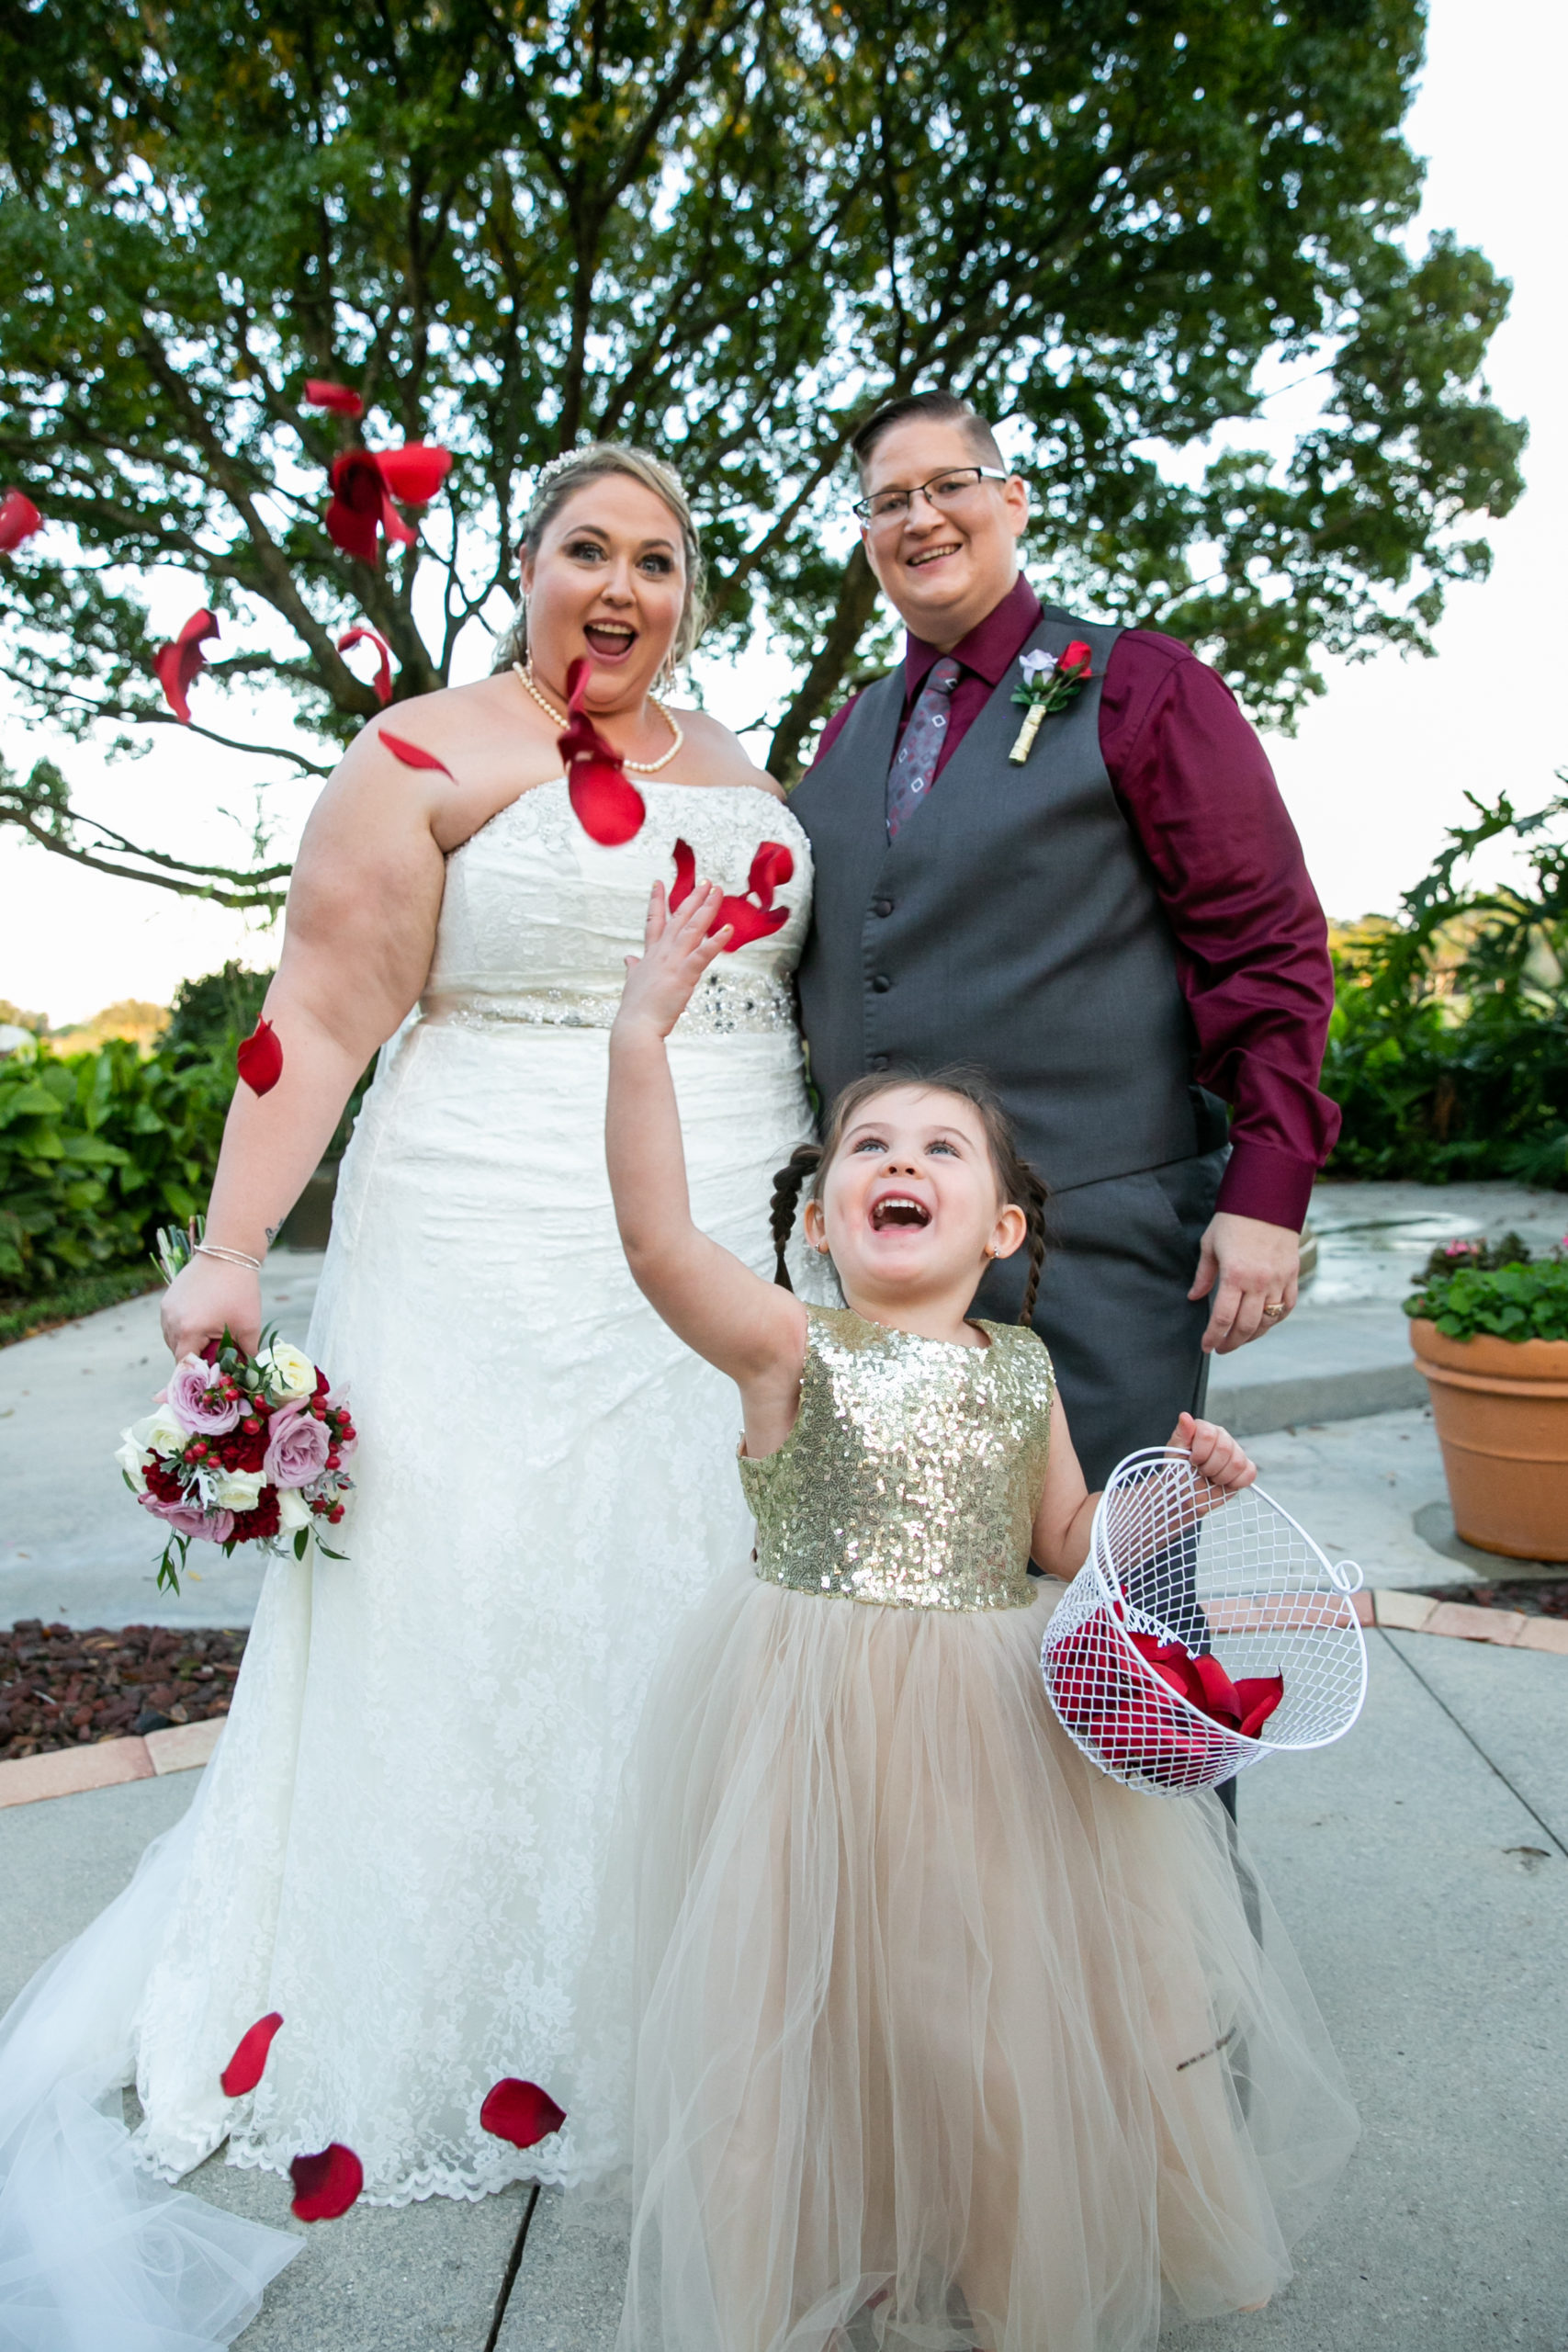 Flower Girl Throwing Rose Petals after Ceremony in front of two Brides